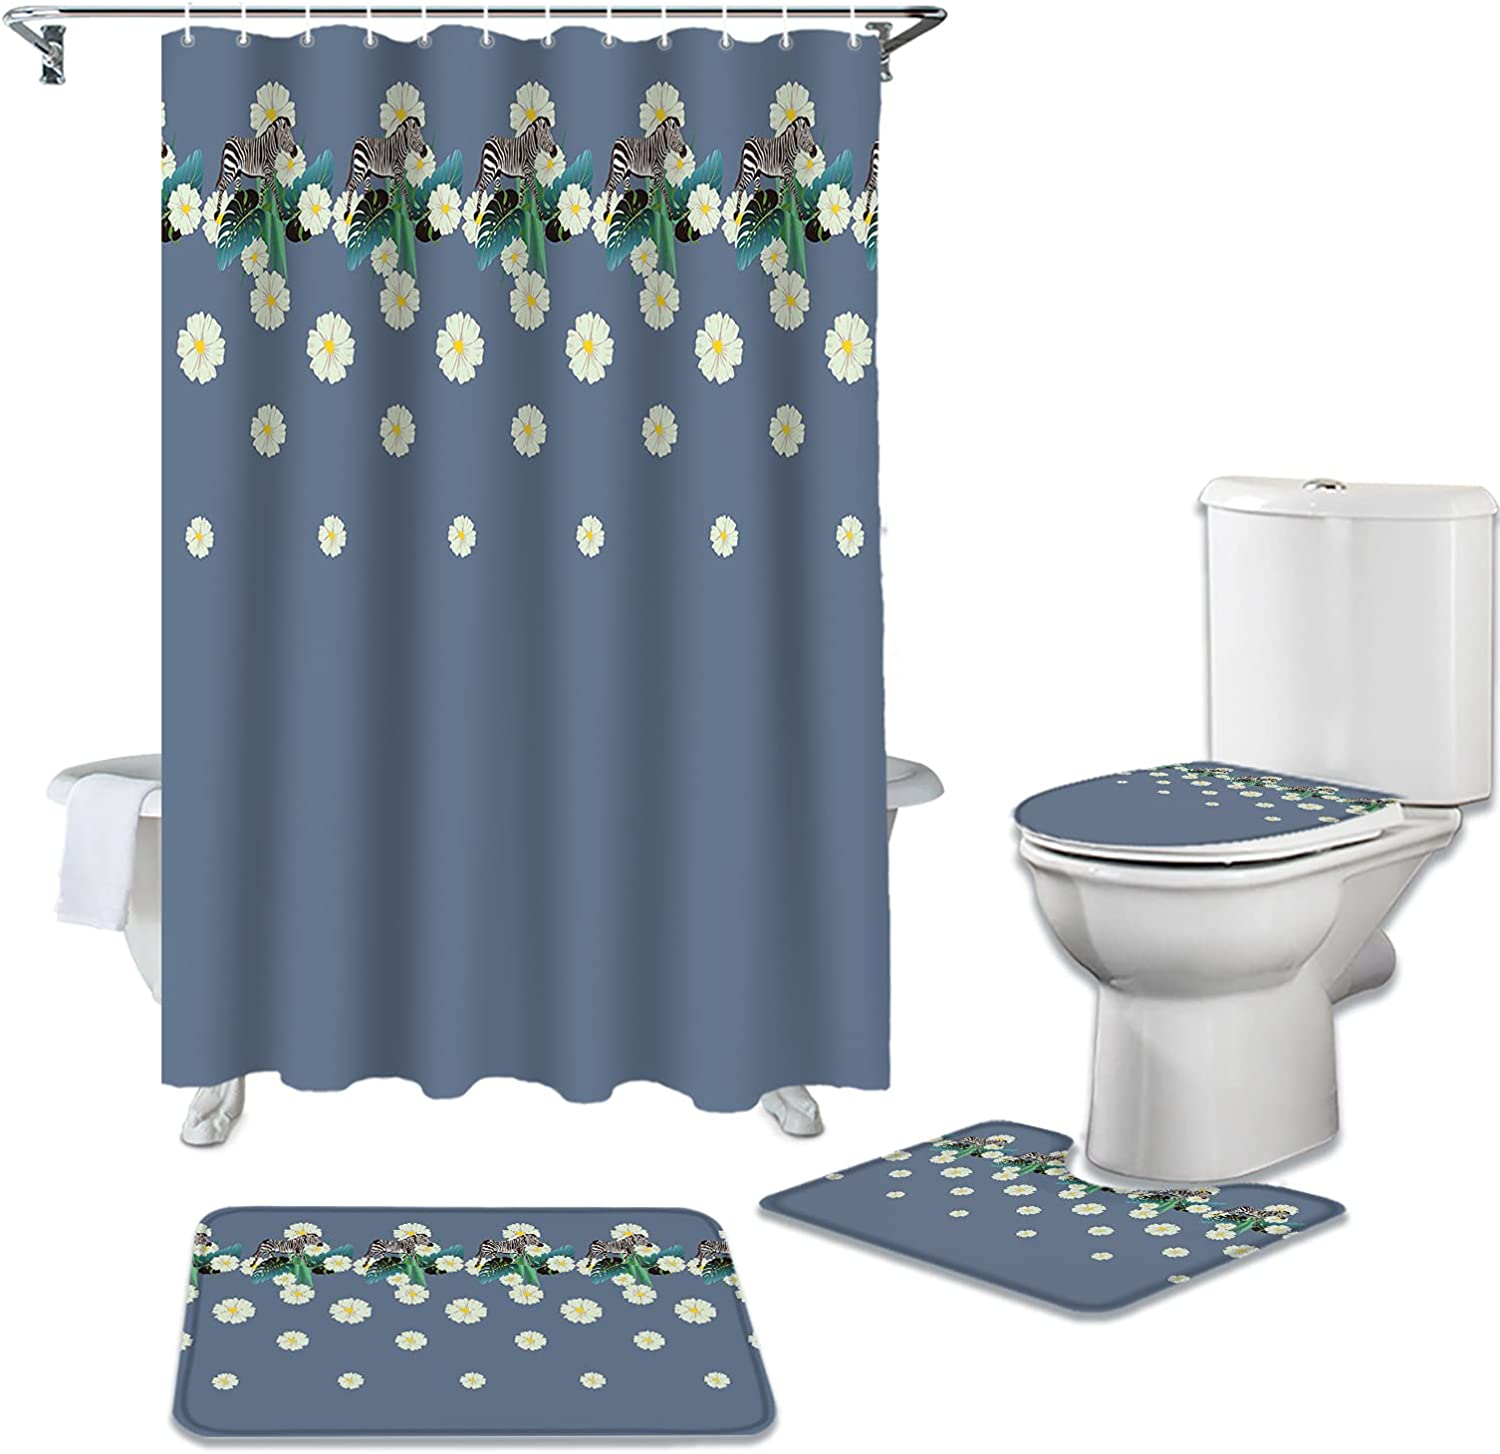 ARTSHOWING Tropical Outlet SALE Animals Ranking TOP18 4 Pcs with Curtain Non-Sl Shower Set